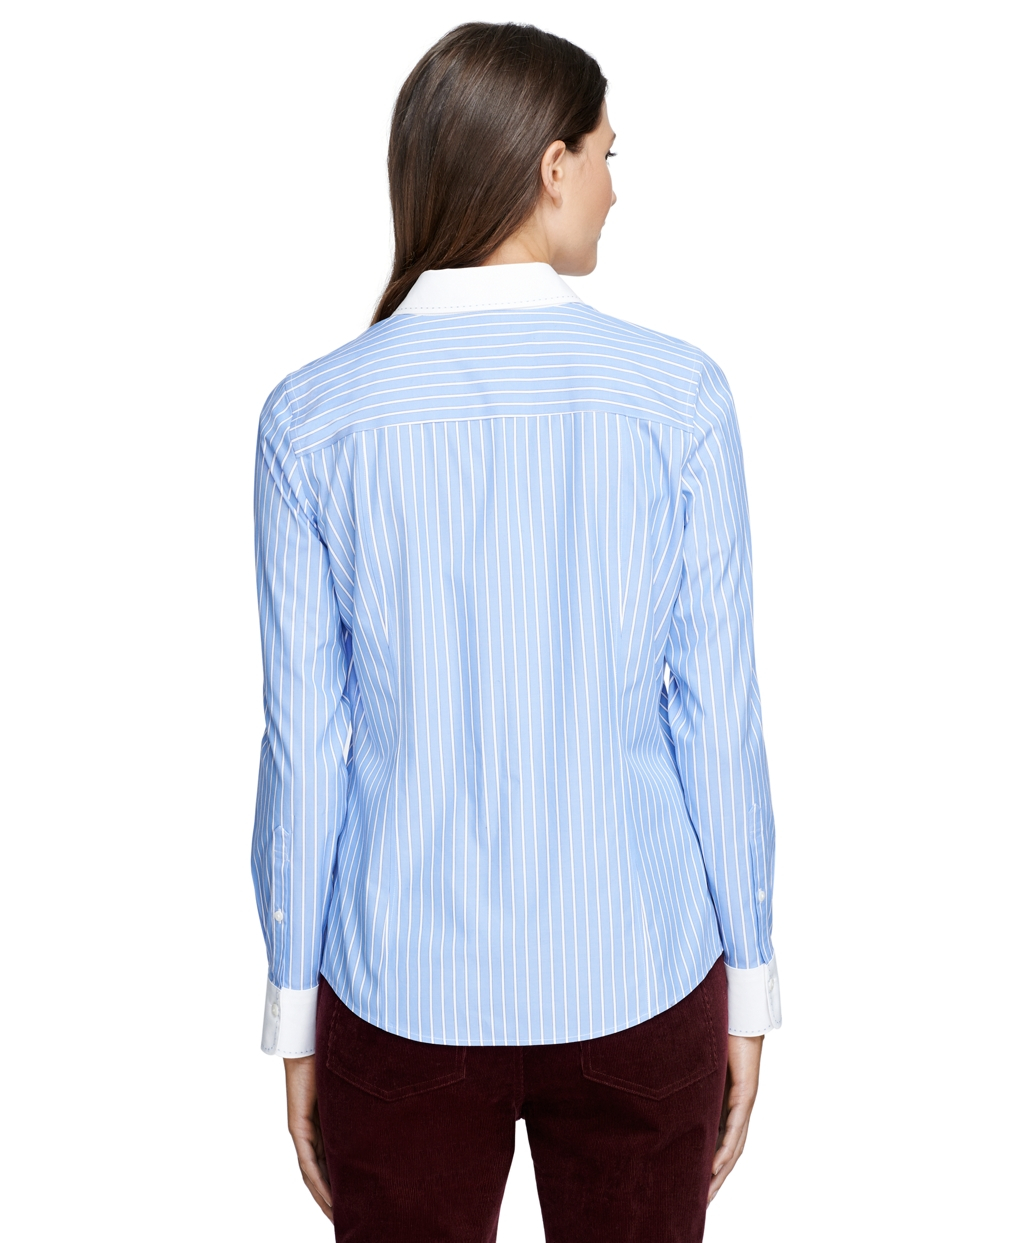 Lyst brooks brothers non iron fitted bold stripe dress for Brooks brothers non iron shirts review